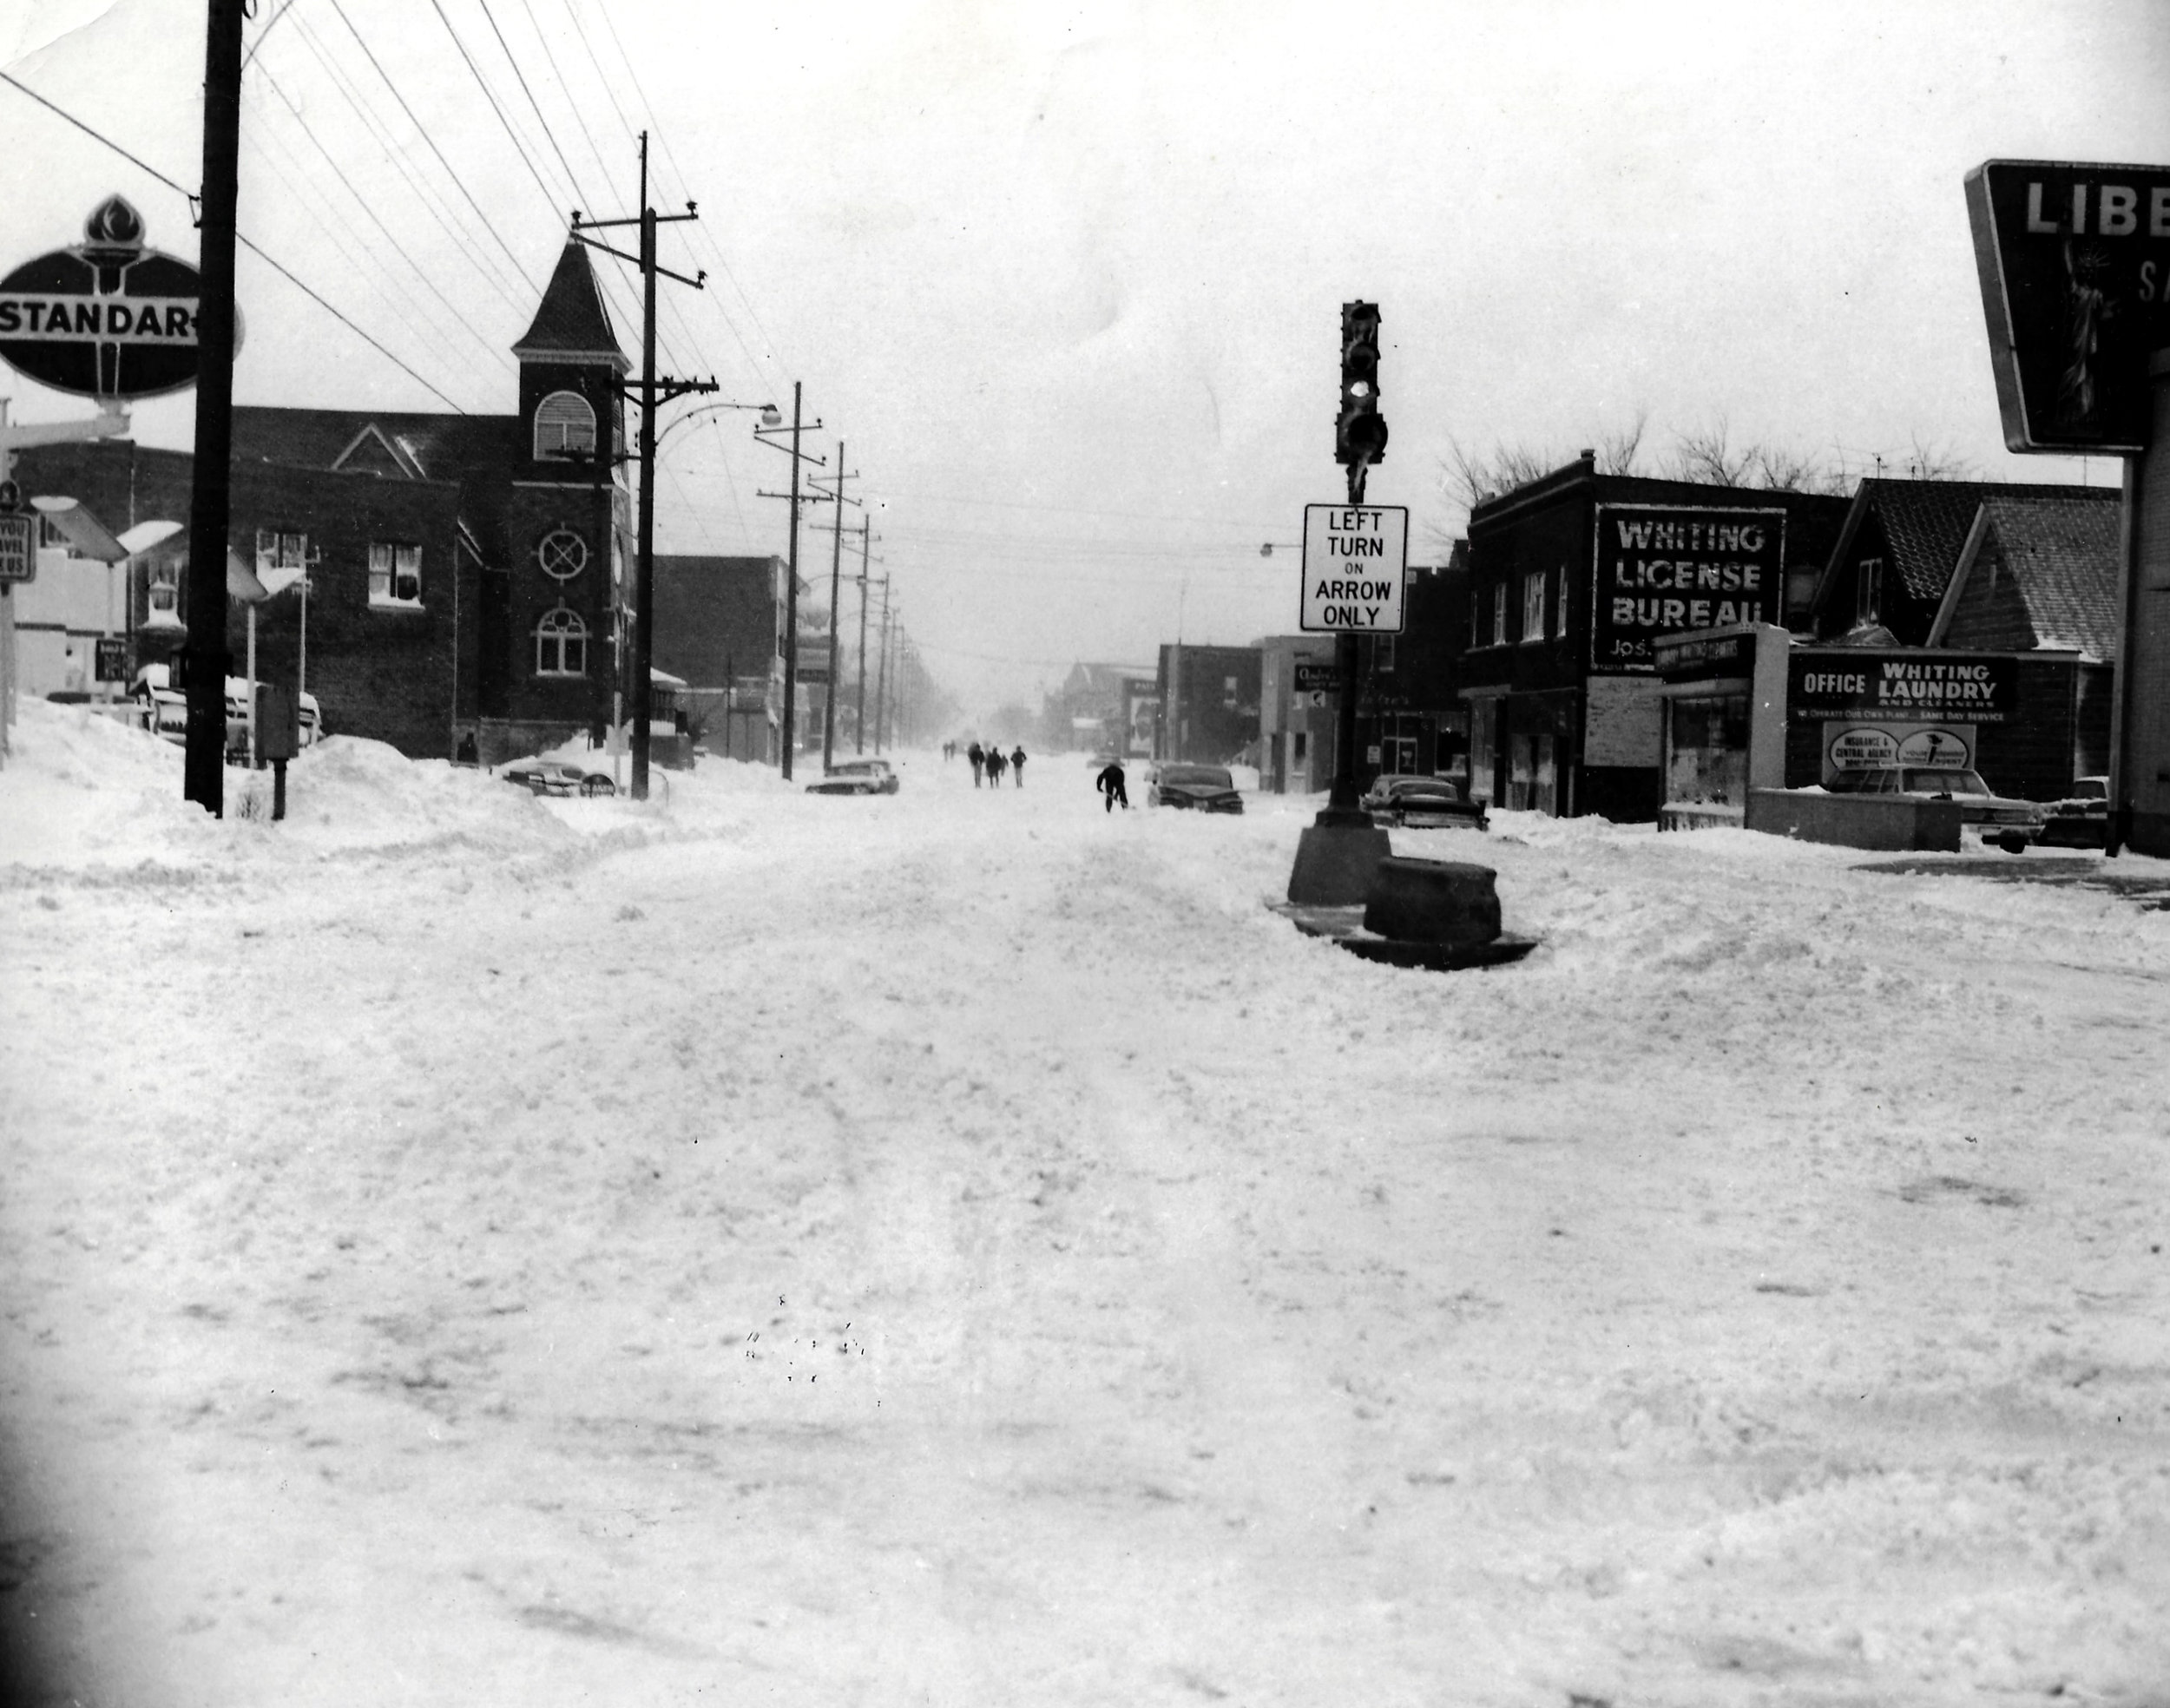 The intersection of 119th Street and Indianapolis Boulevard was not easy to navigate after the snow fell, which is why a group of pedestrians, in the distance, felt comfortable walking down the center of the Boulevard. Closer to the camera, a motorist digs out his car, stuck in the snow on the street.